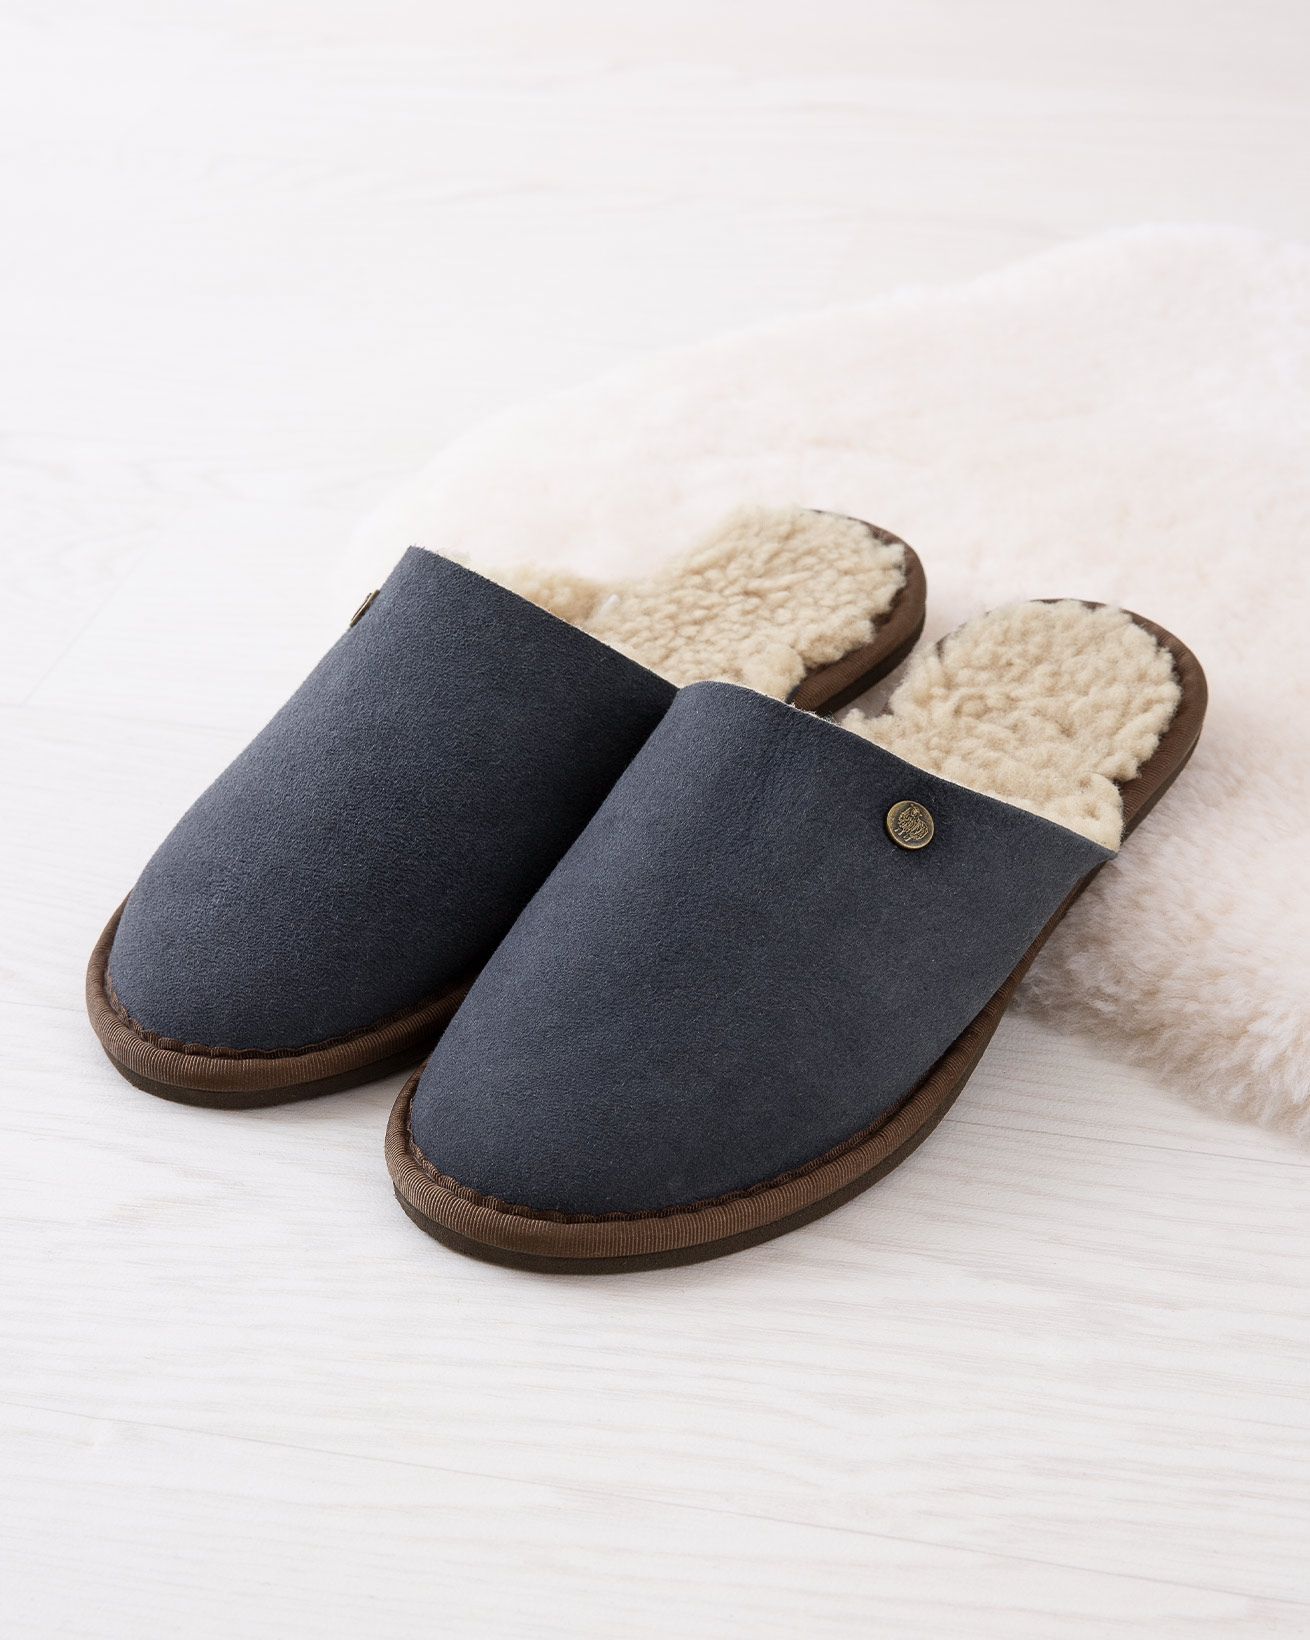 6615_ladies-sheepskin-mules_blue-iris_lifestyle_lfs.jpg